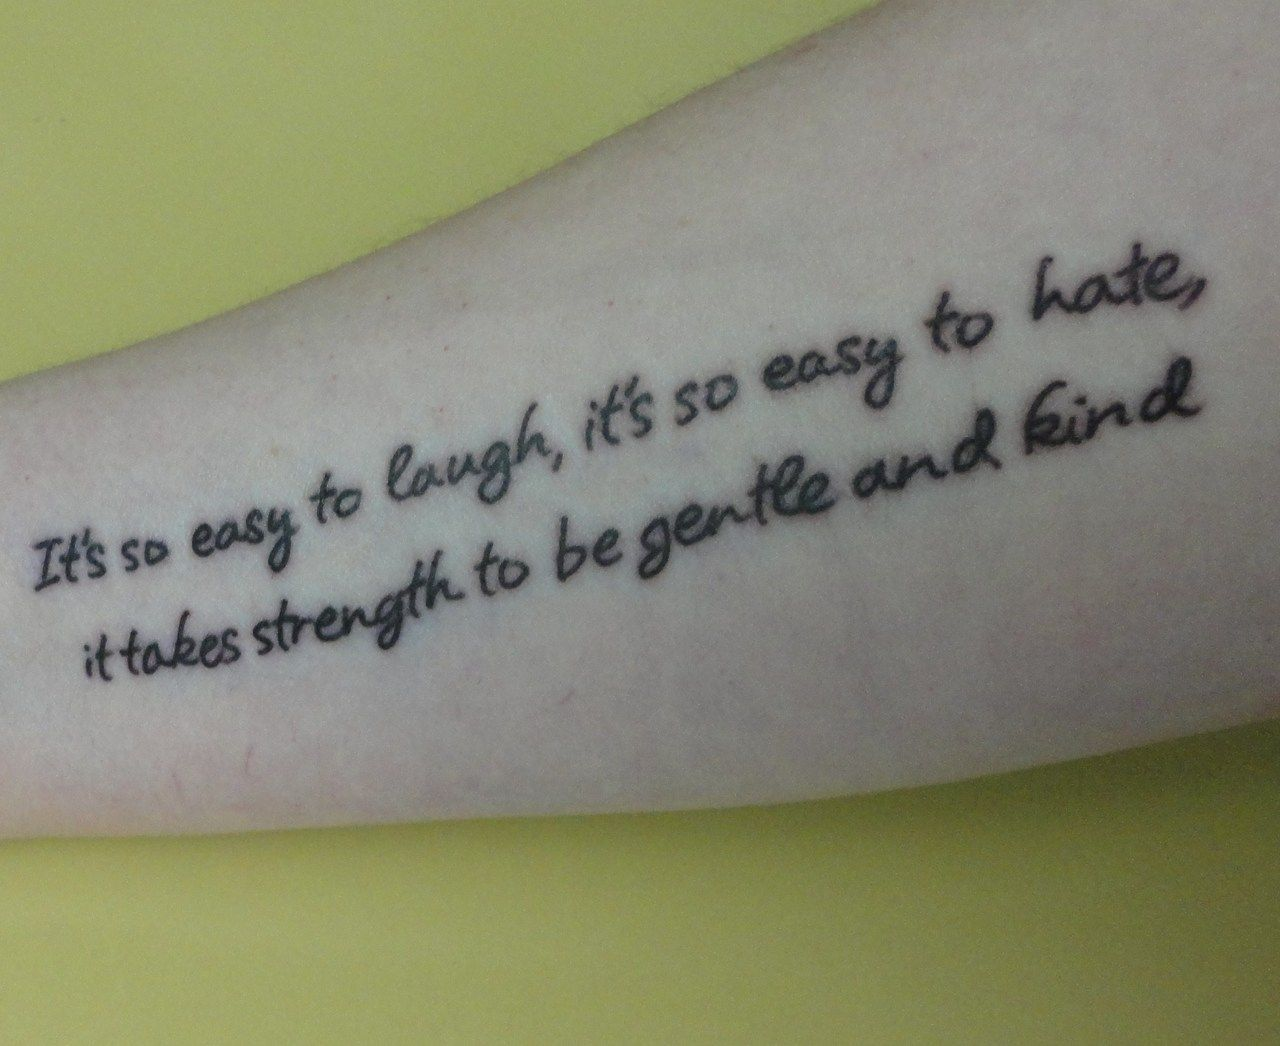 """It's so easy to laugh, it's so easy to hate, it takes strength to be gentle and kind."" – Morrissey [766×626]"